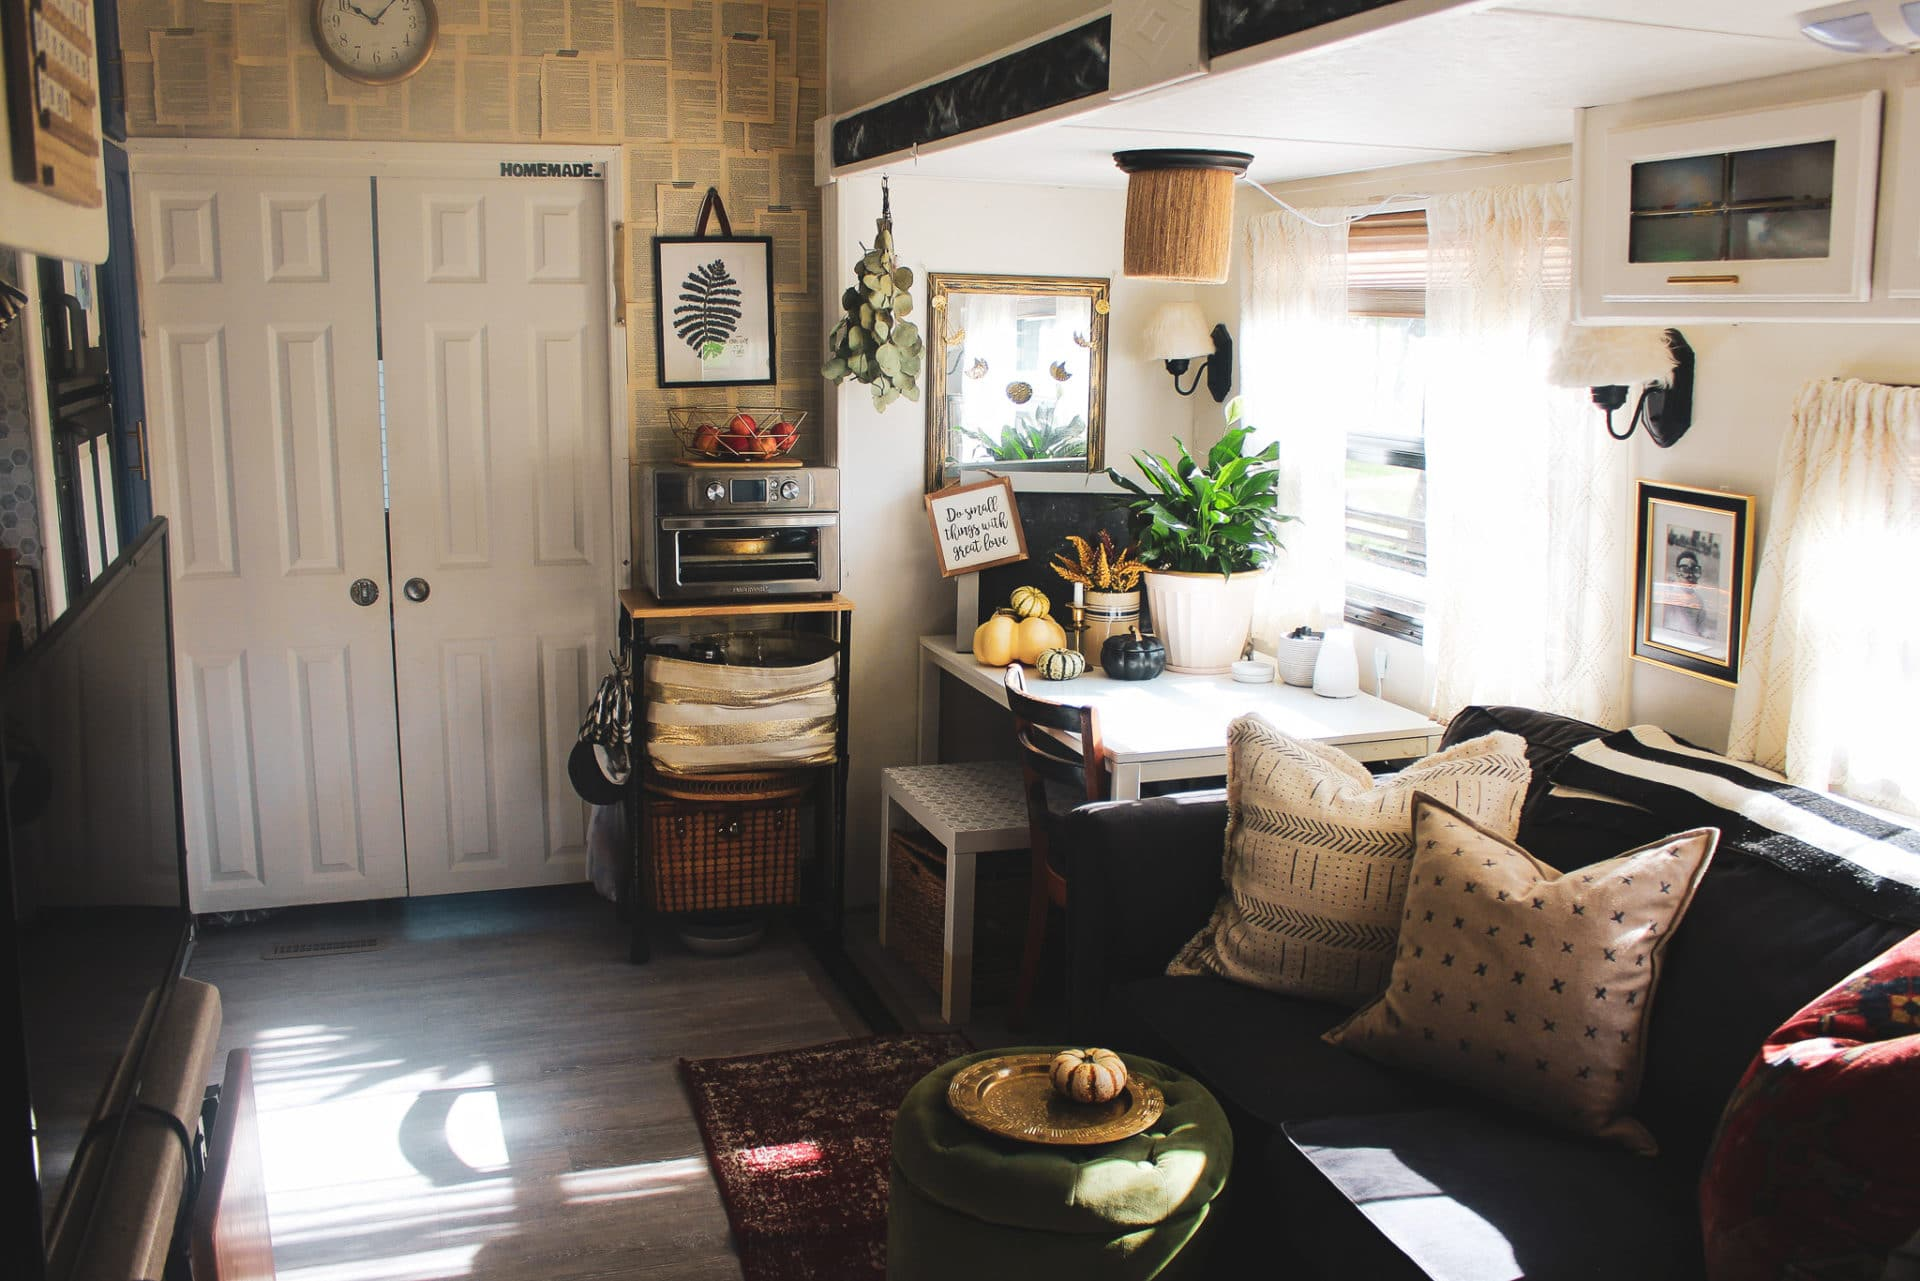 'Tis the Season: How to Decorate Your RV for the Holidays